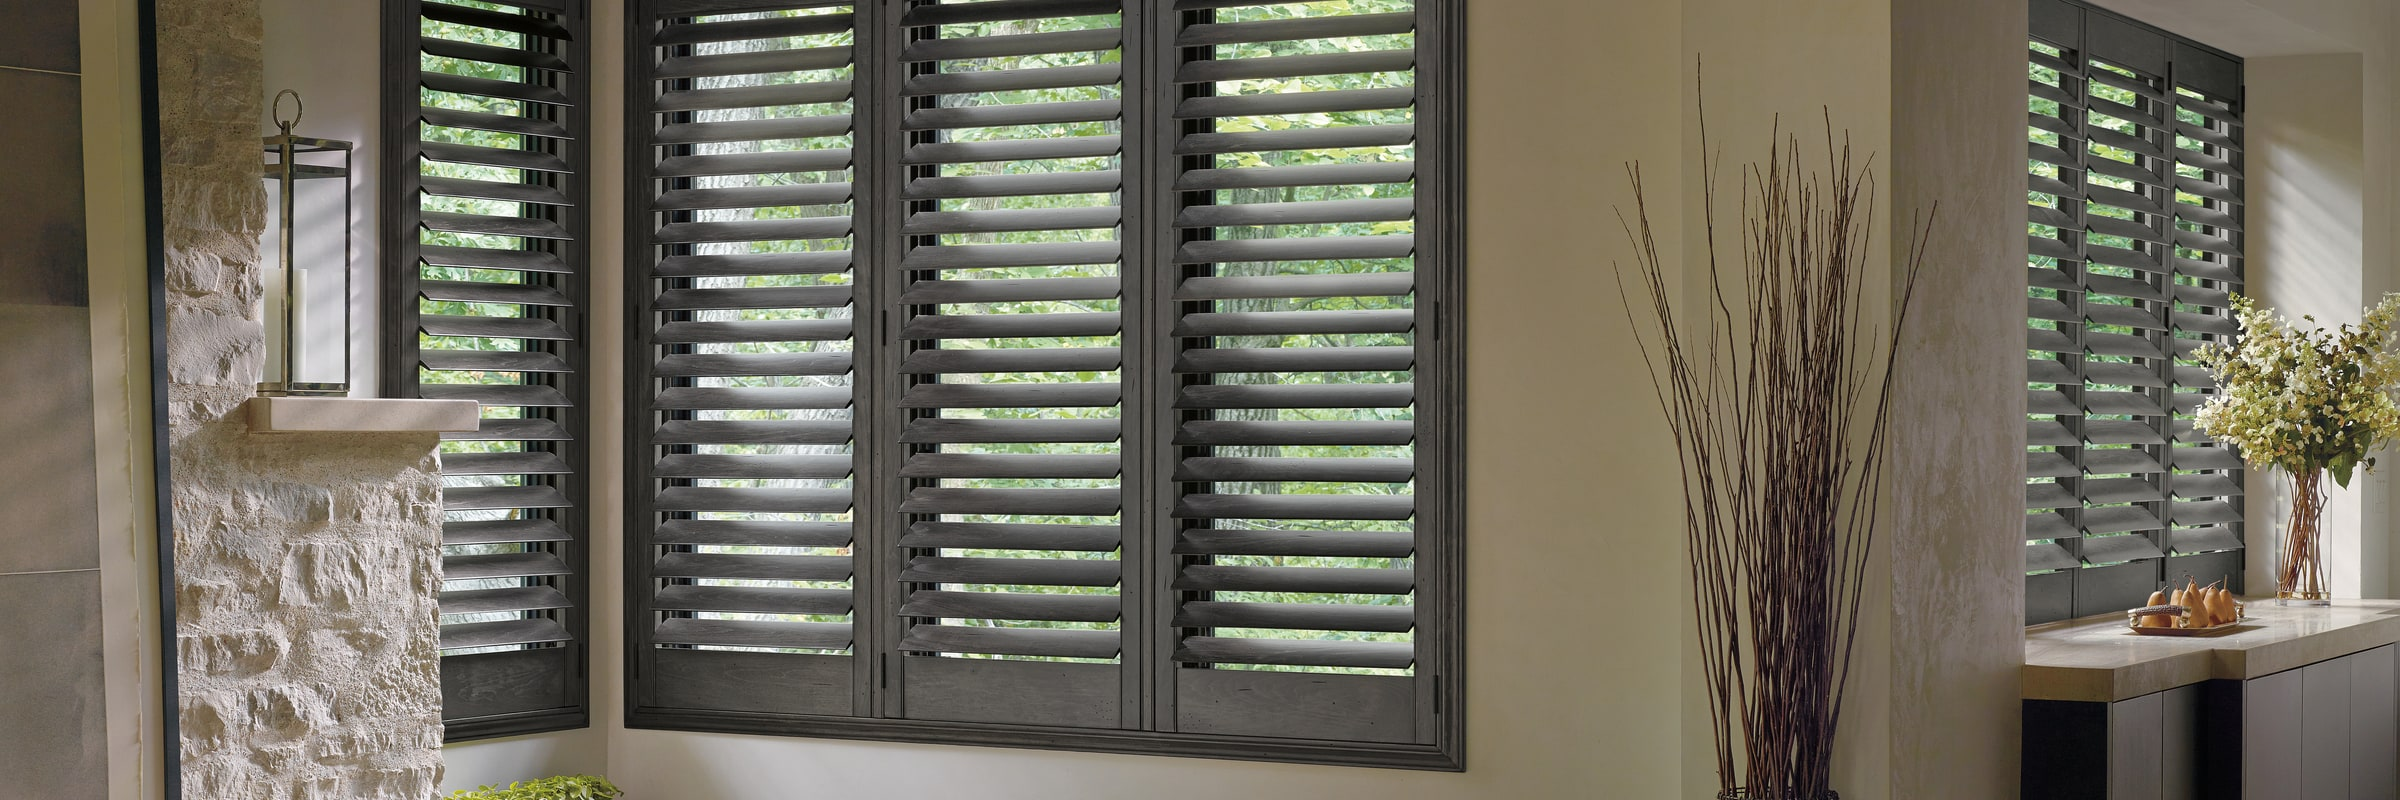 Custom plantation shutters in Hardwood Pewter - Heritance